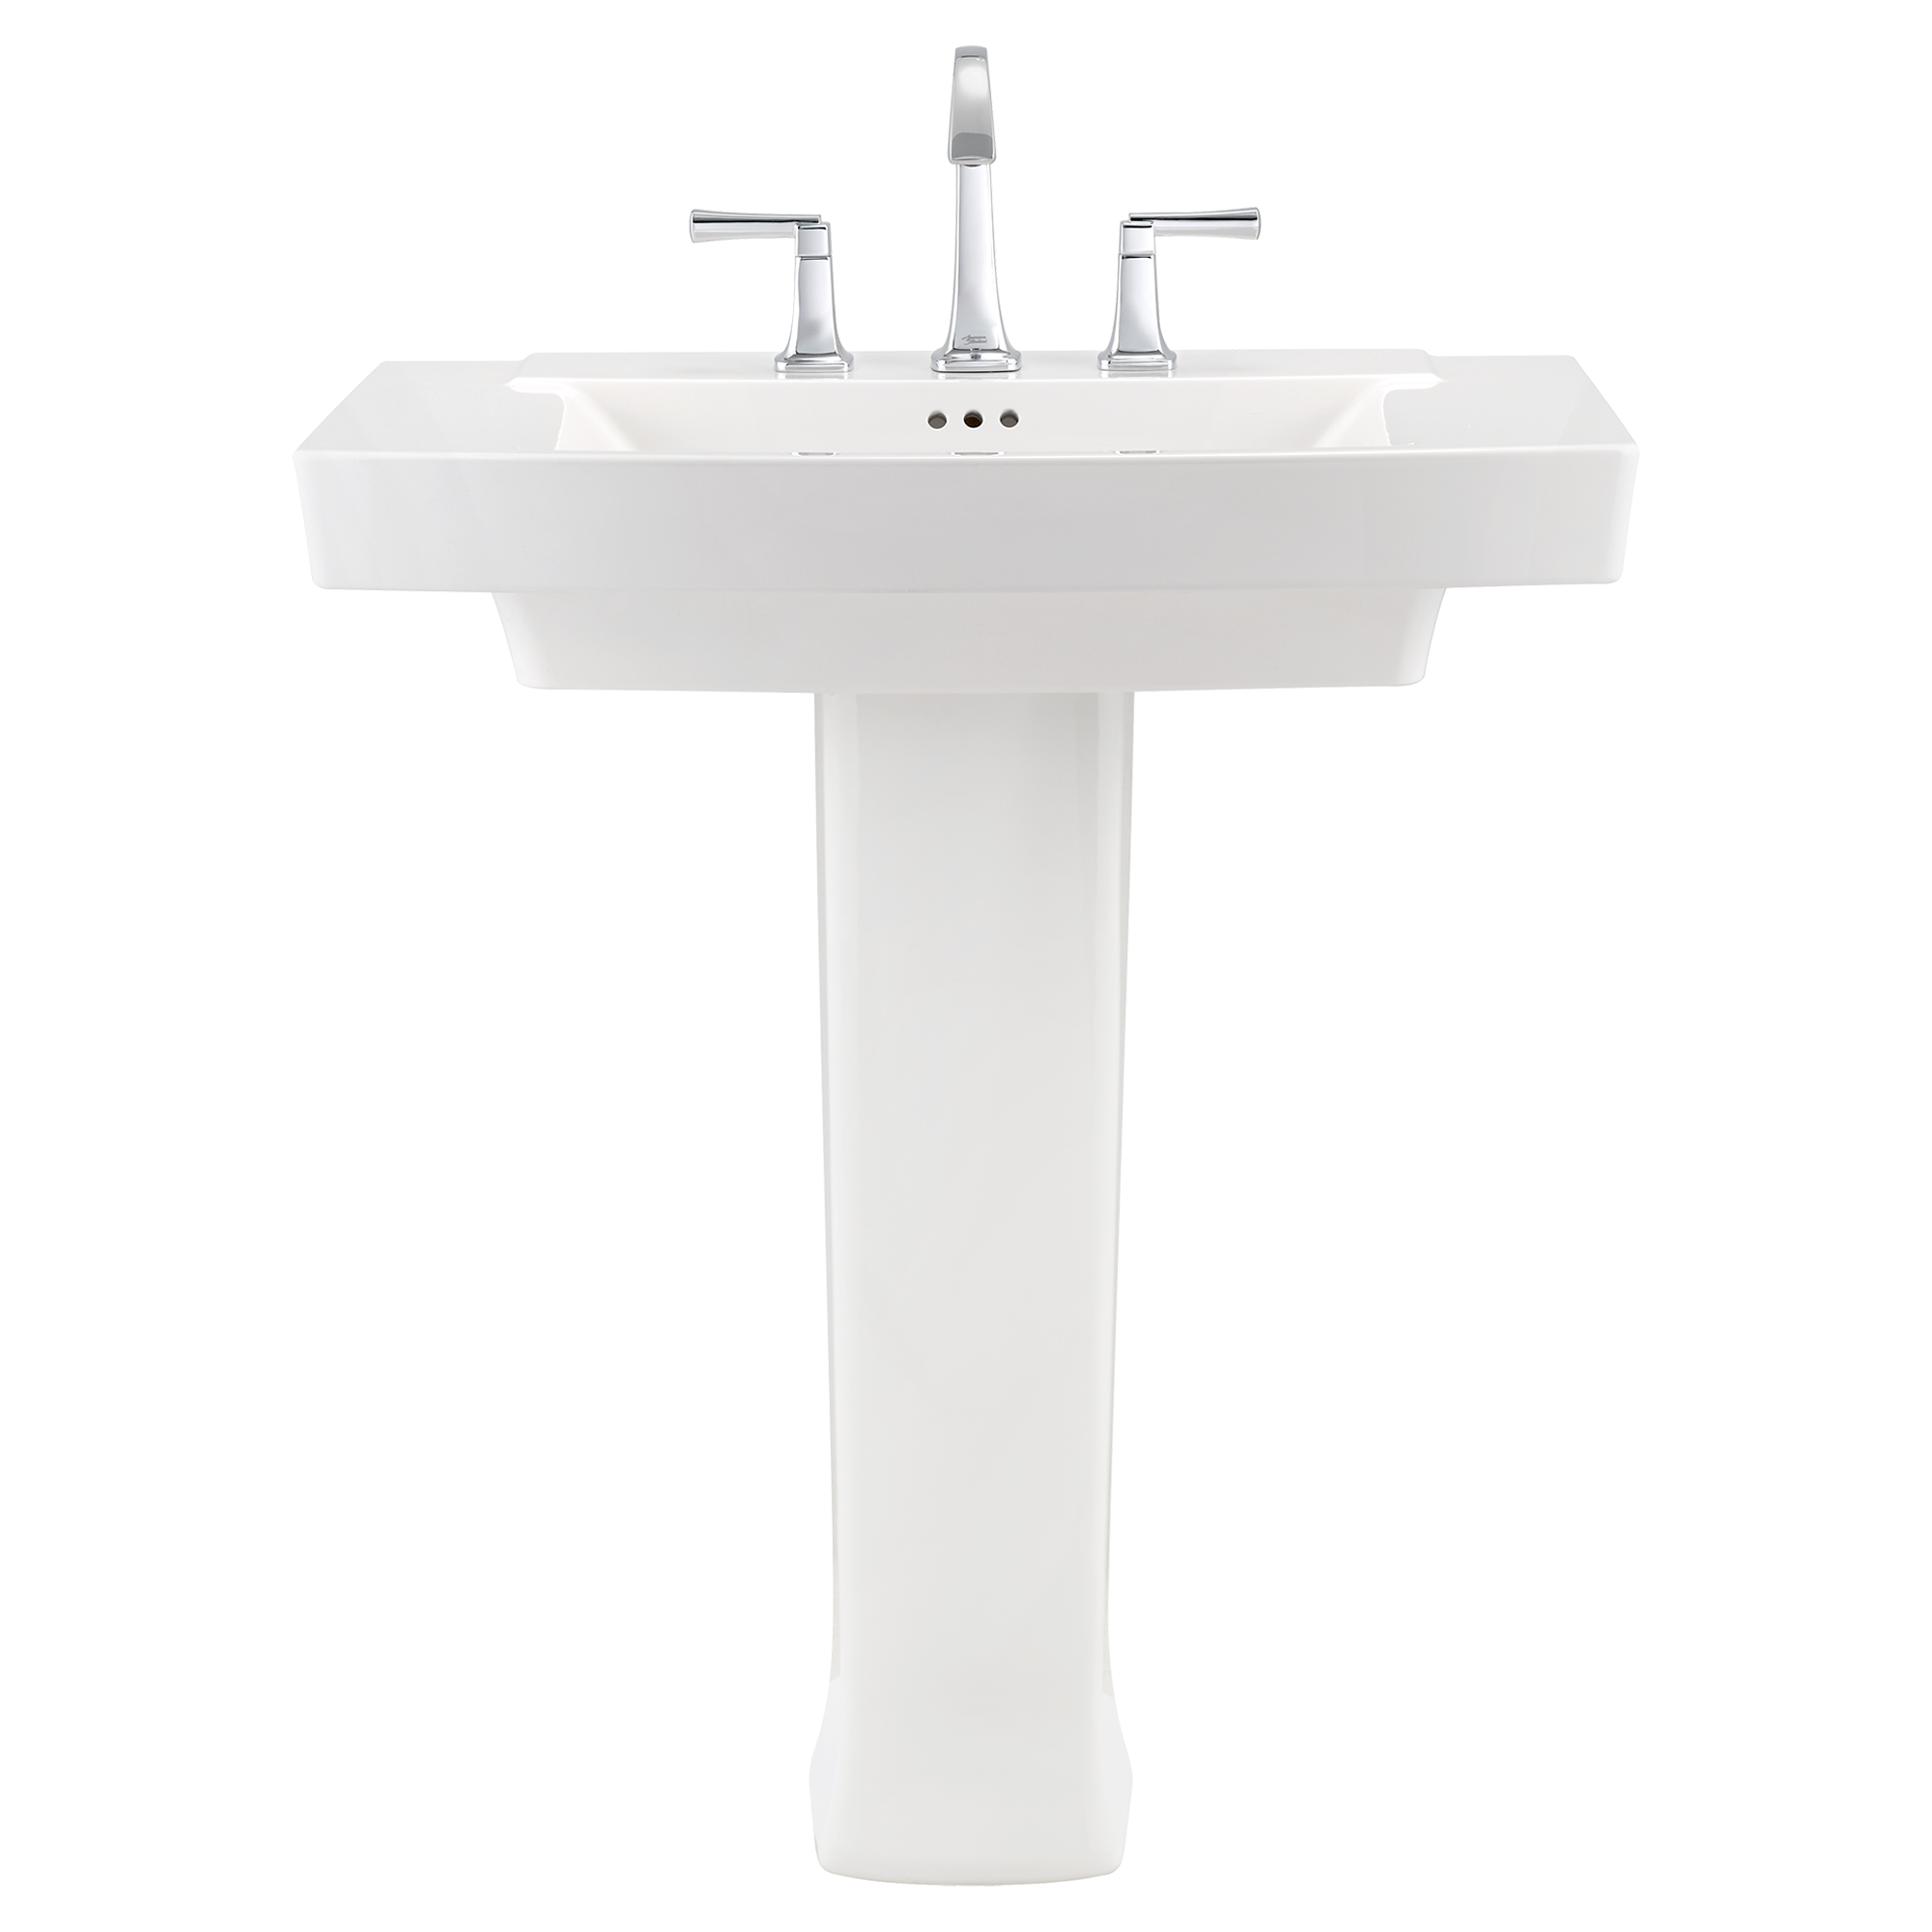 The Period Bath Supply Company A Division Of Historic Houseparts Inc Pedestal Sinks American Standard Townsend Pedestal Sink 4 Inch Centers White